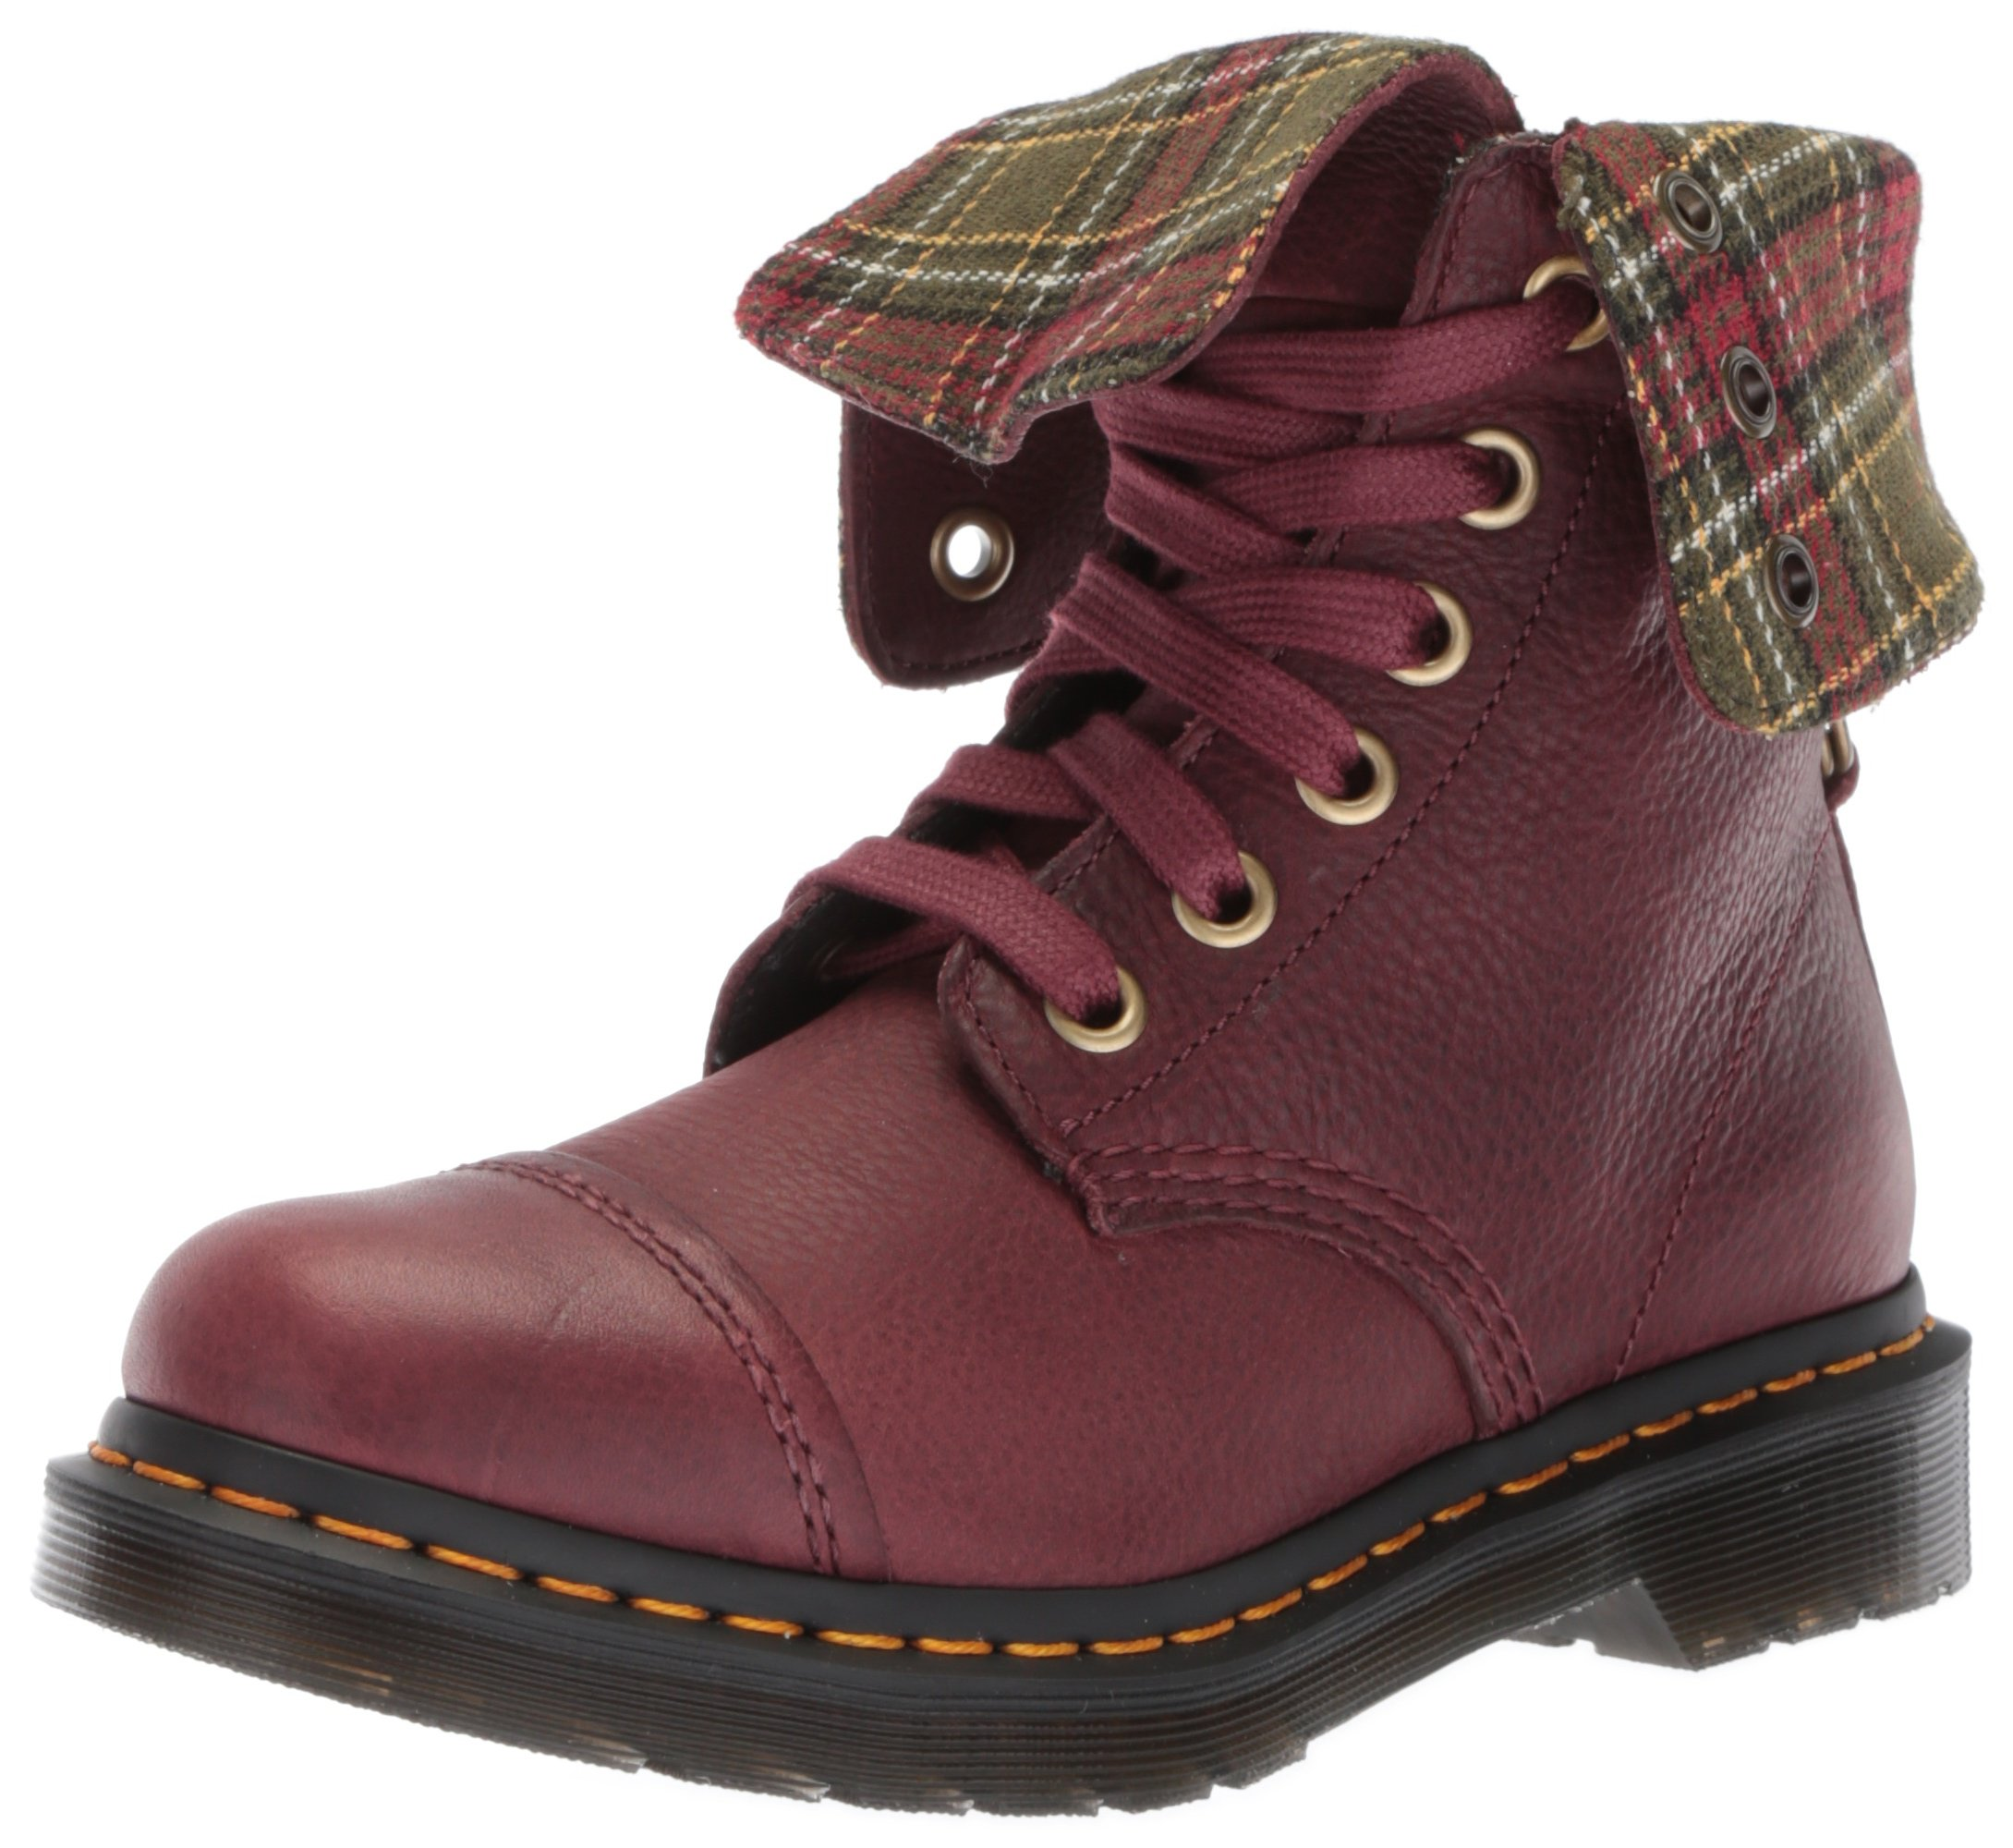 Dr. Martens Women's Aimilita FL Cherry Red Ankle Boot